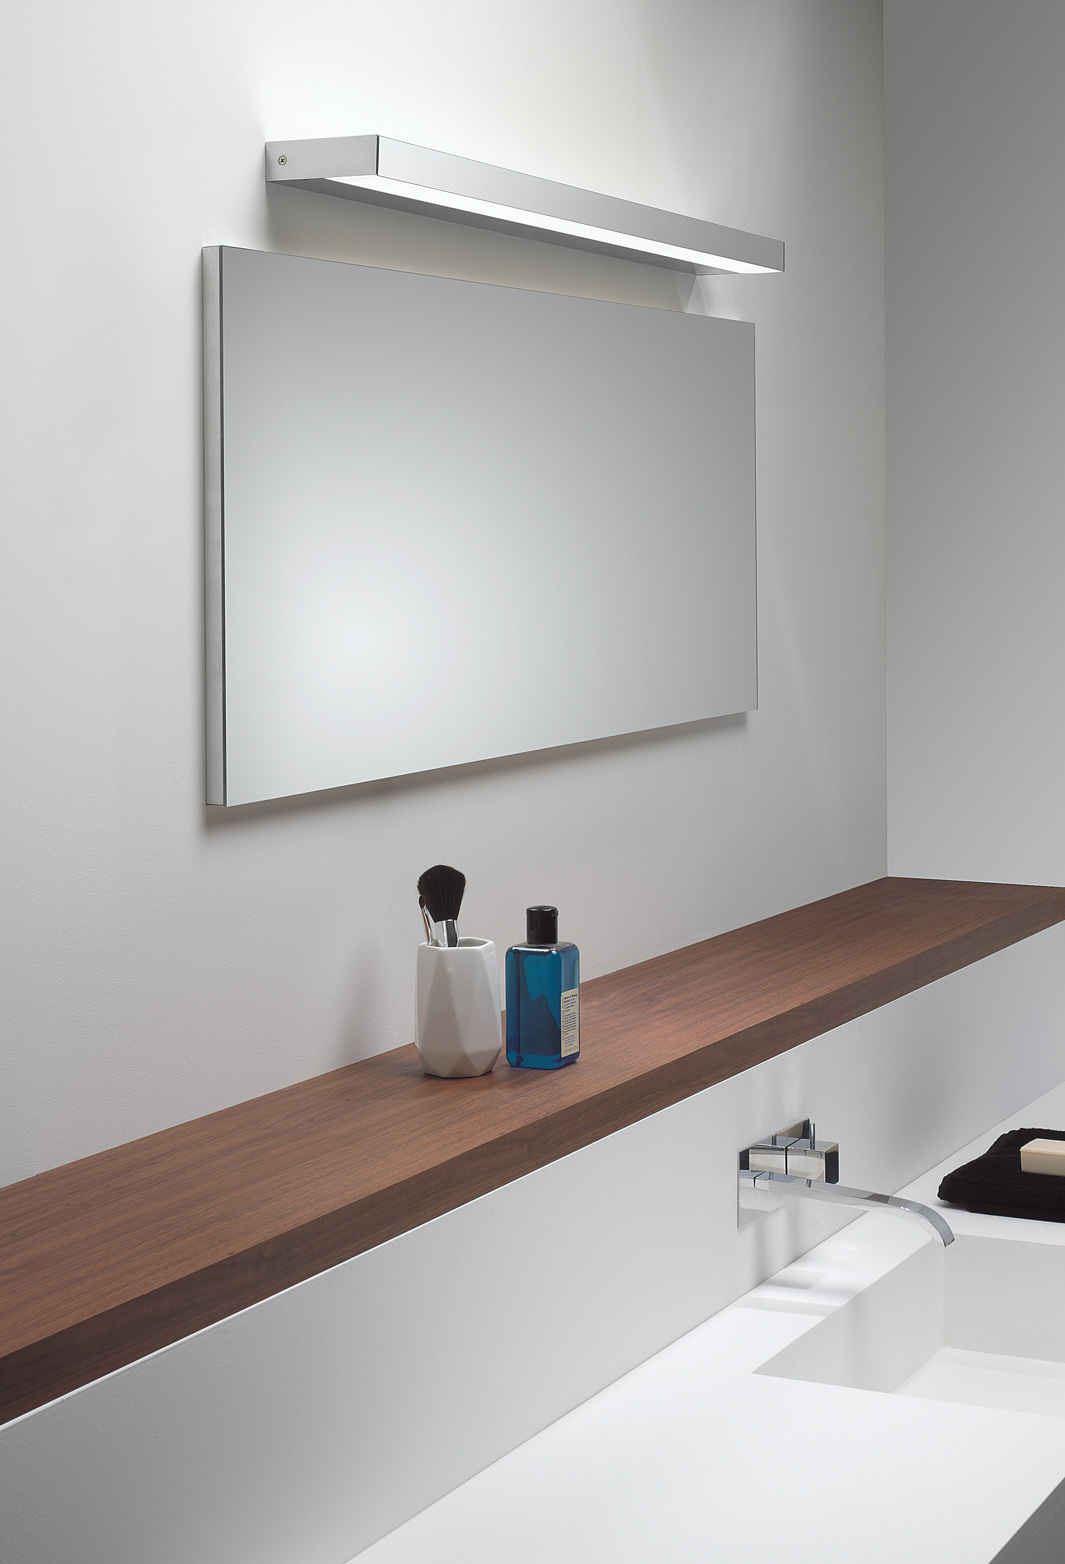 astro axios led ip44 bathroom wall light mirror light up down polished